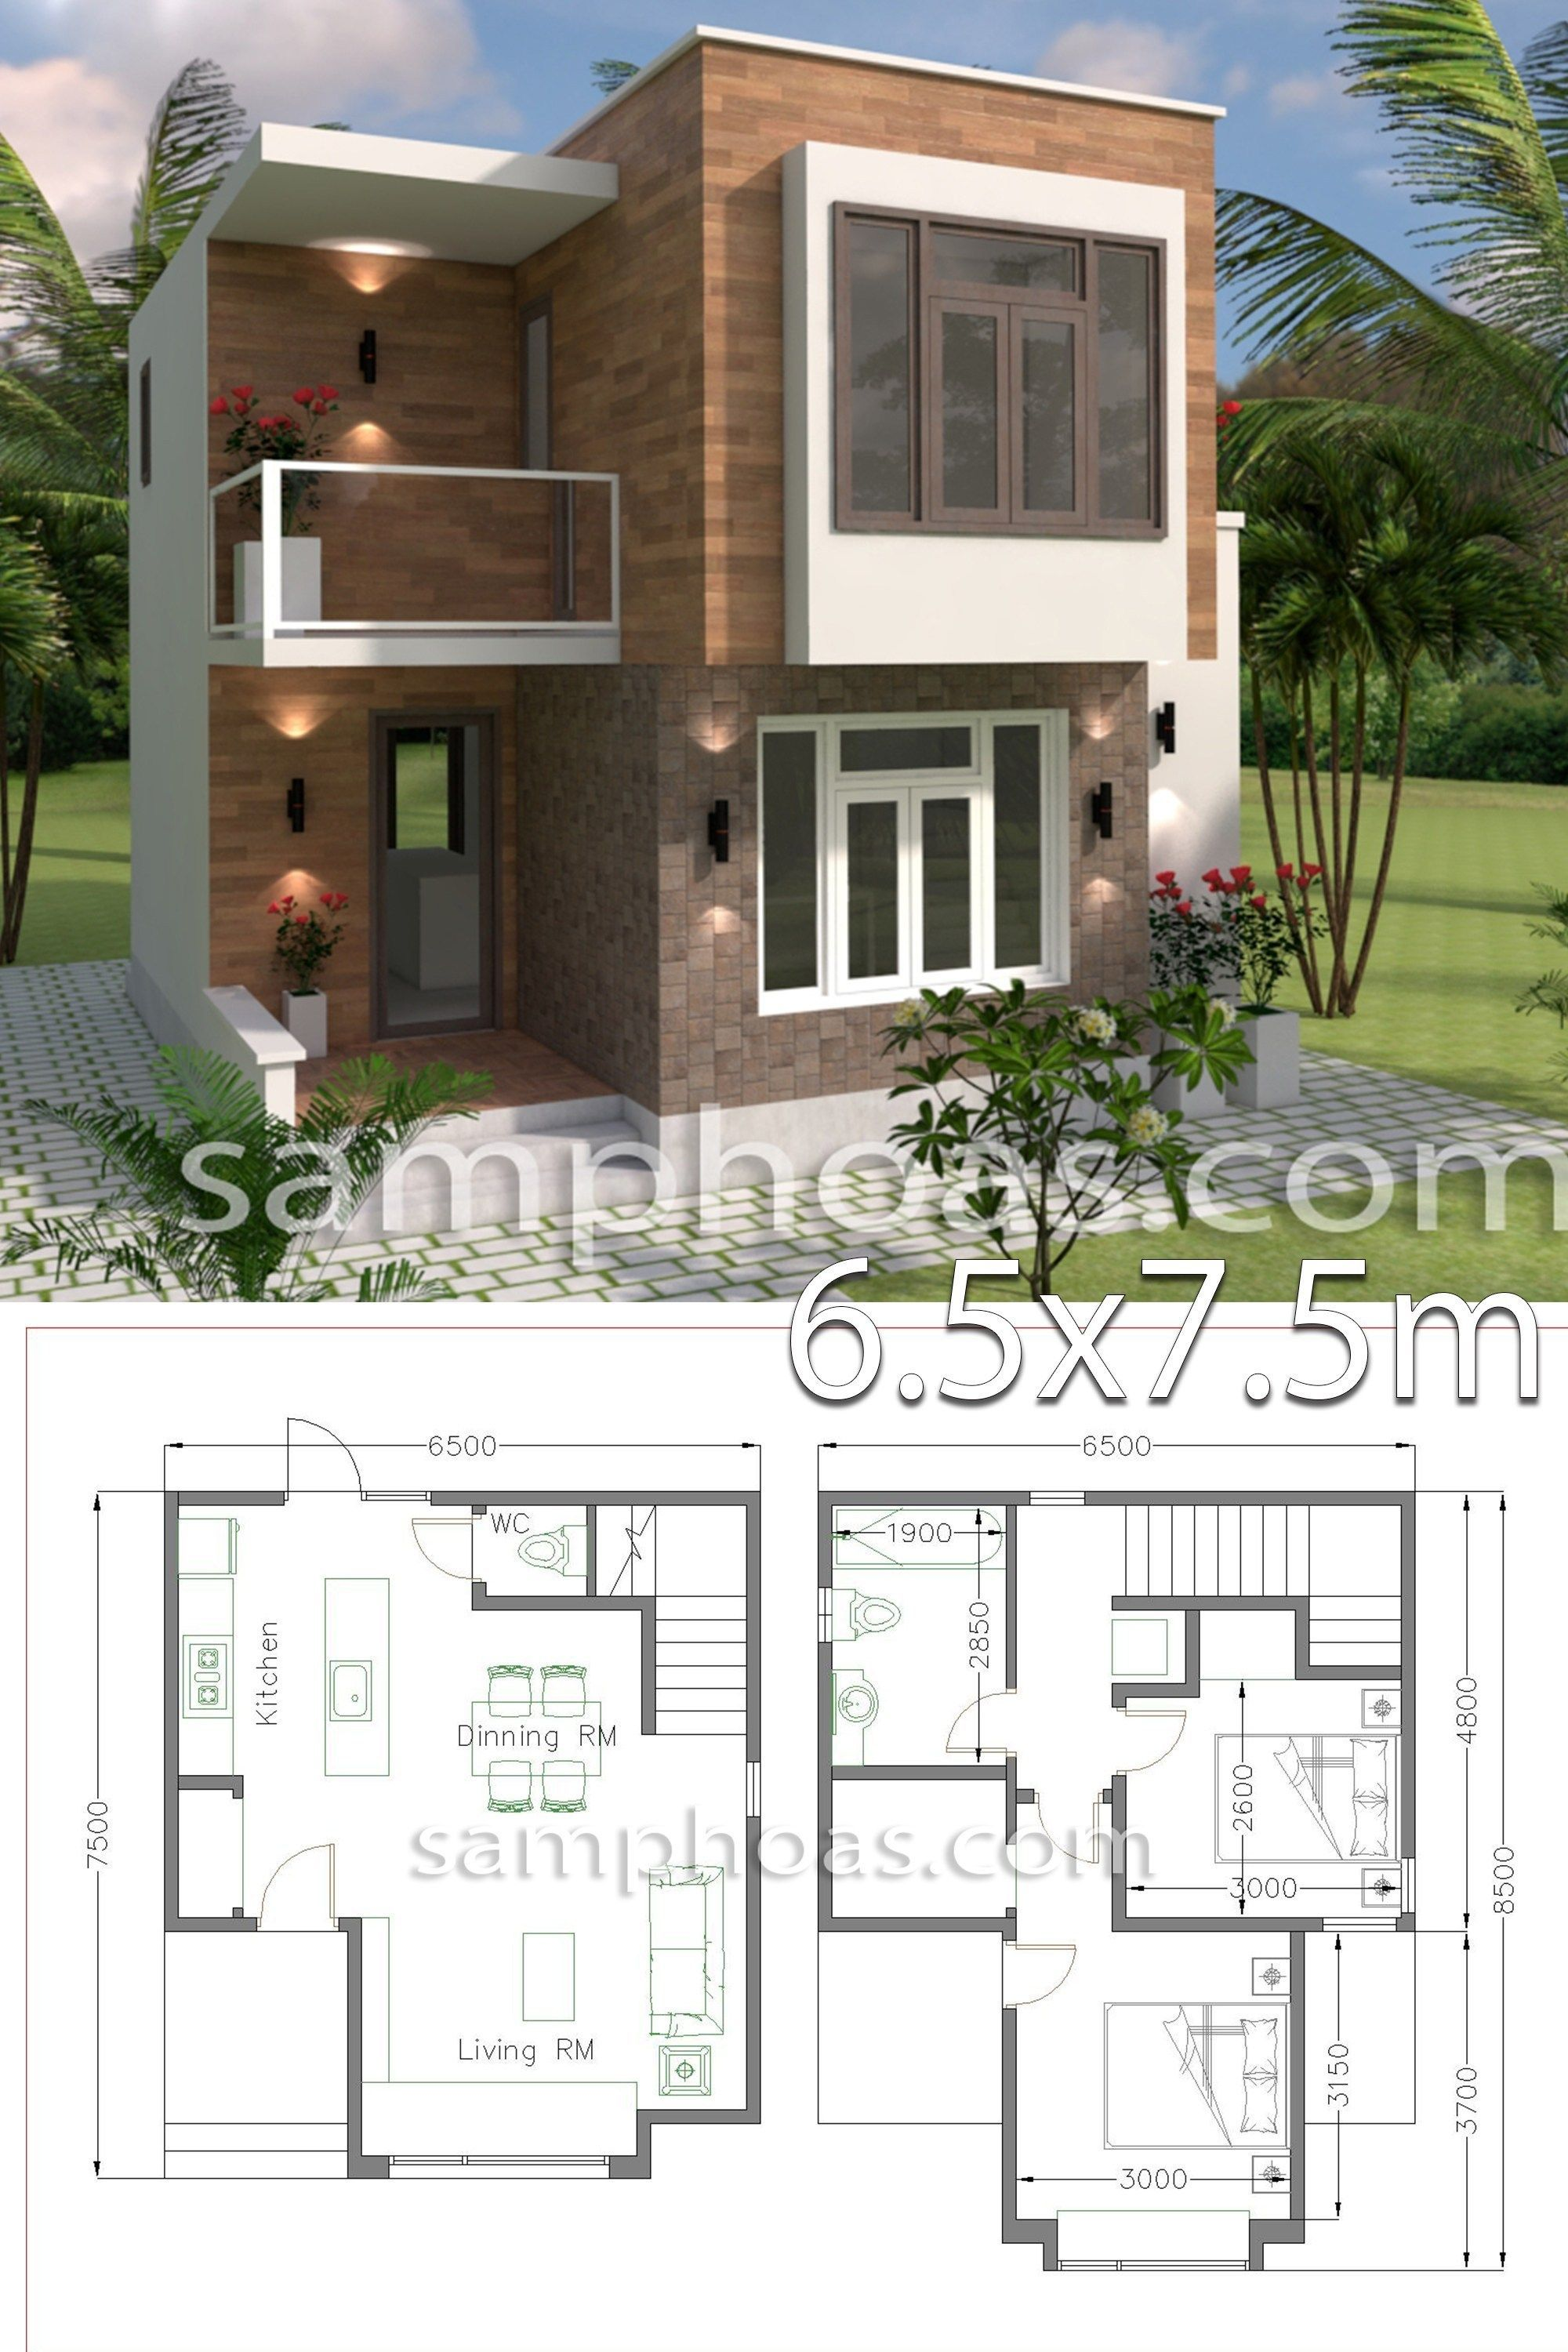 The House Has Car Parking Small Garden Living Room Dining Room Kitchen Has Door Access To Backy Small House Design Architectural House Plans House Plans